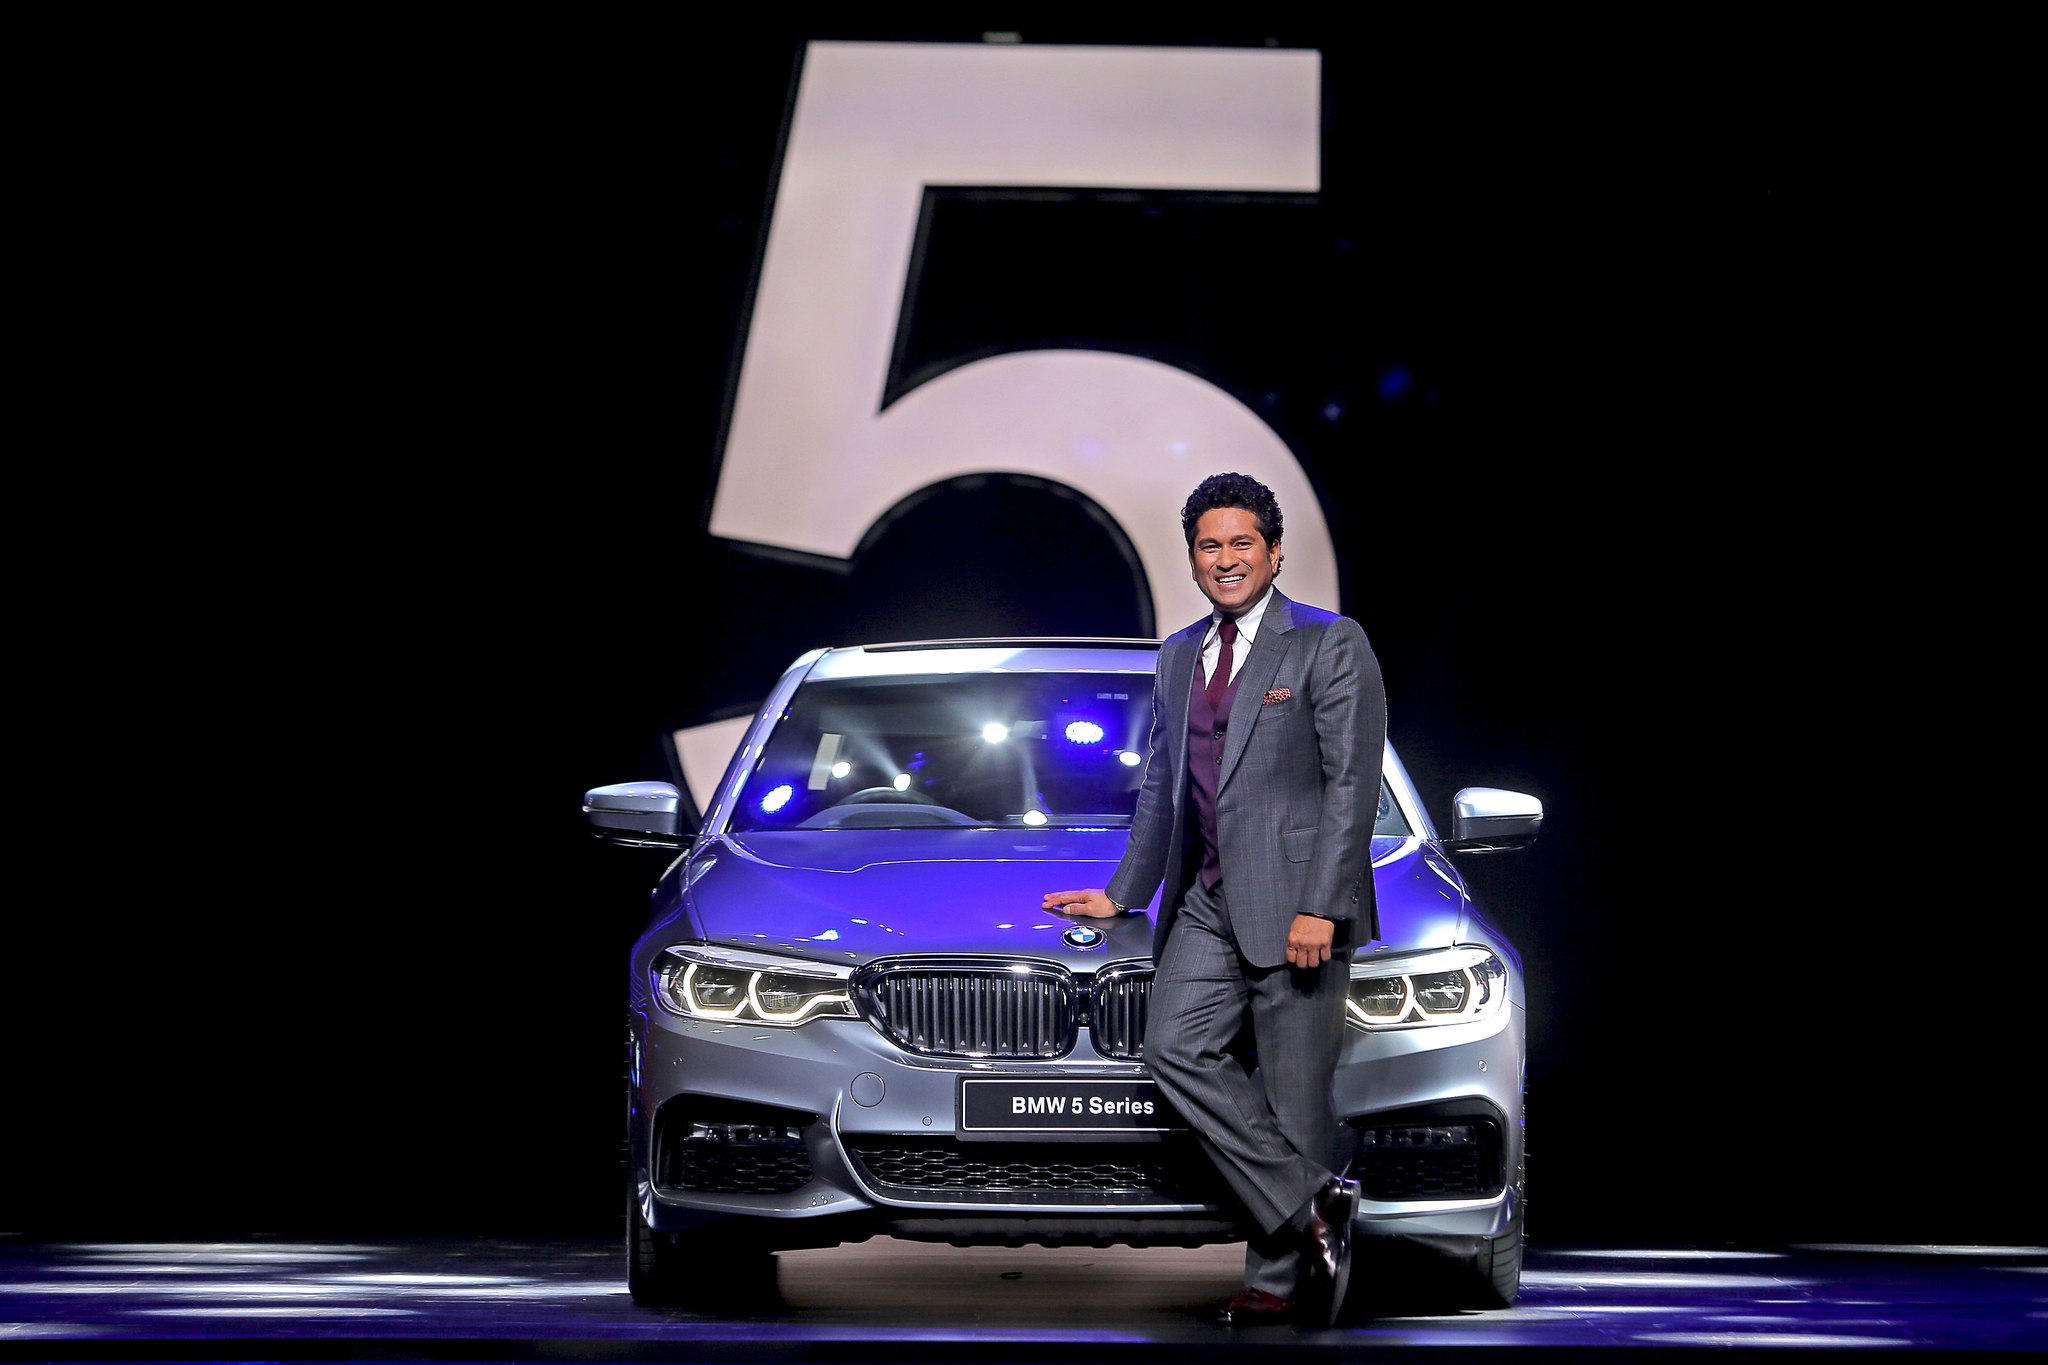 Mr. Sachin Tendulkar with the all-new BMW 5 Series_f